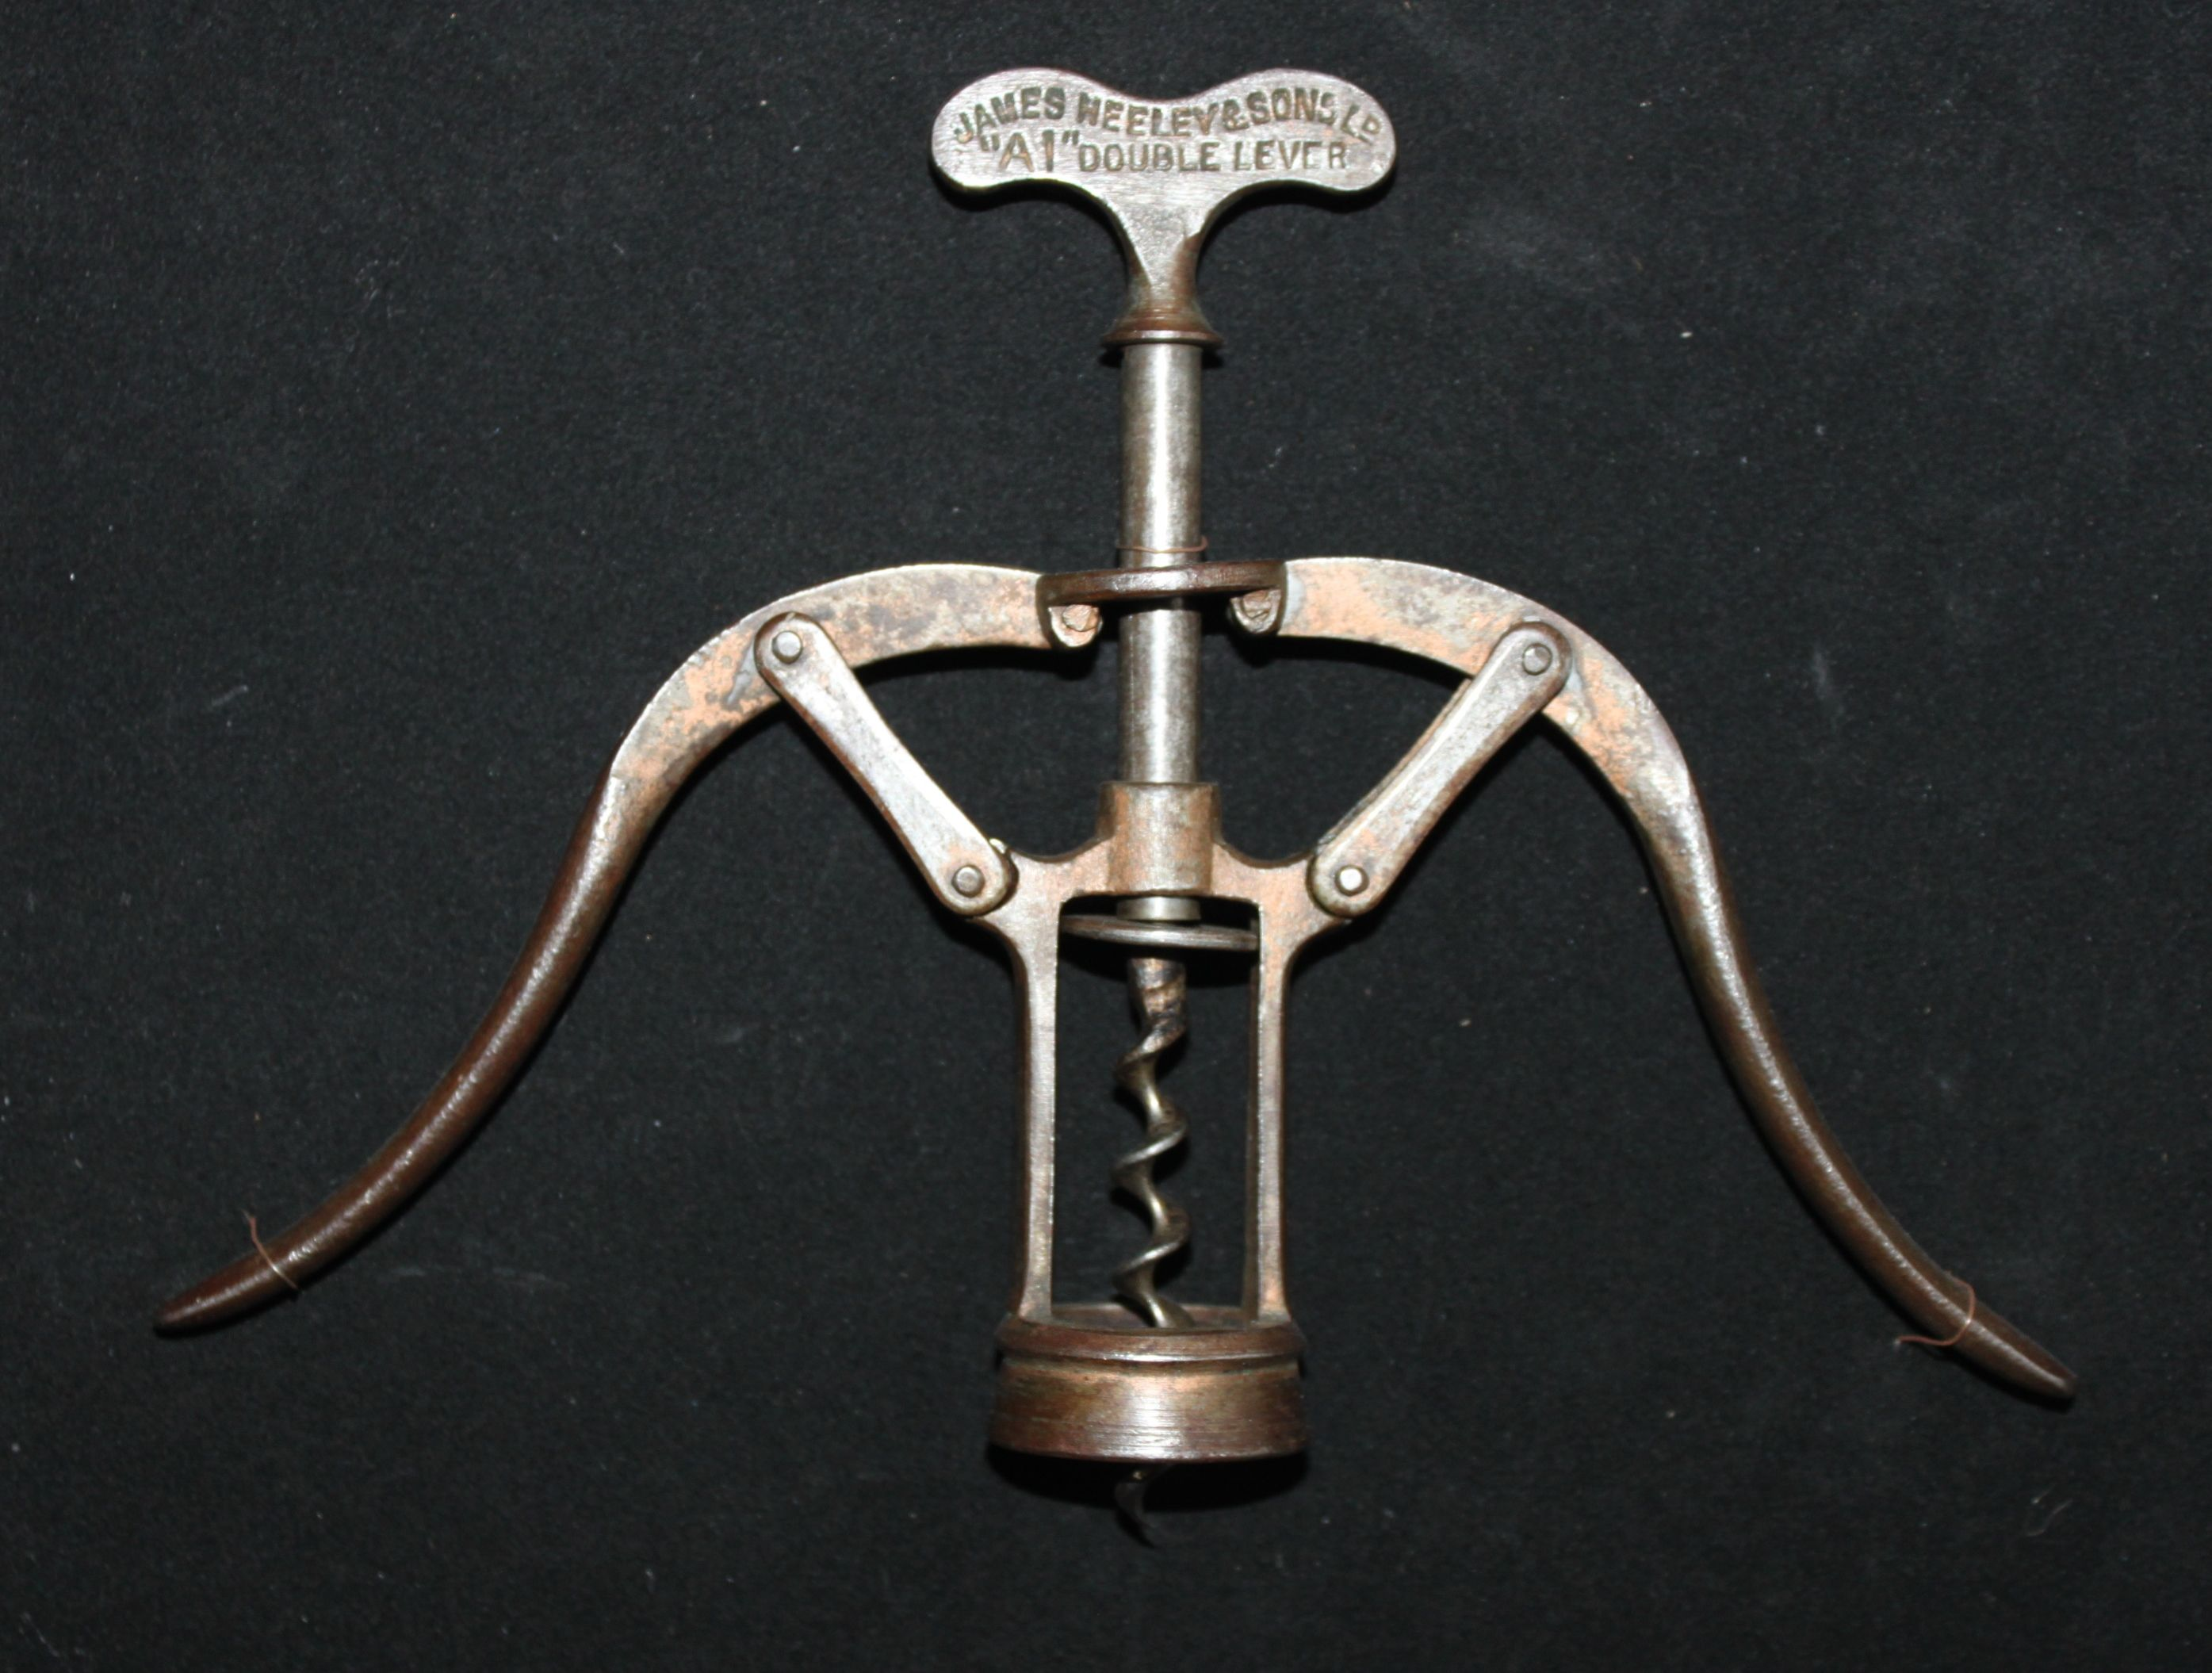 "1885 Antique Corkscrew James Heeley & Sons Copper finish ""A1"" Double Lever with Bladed Worm"